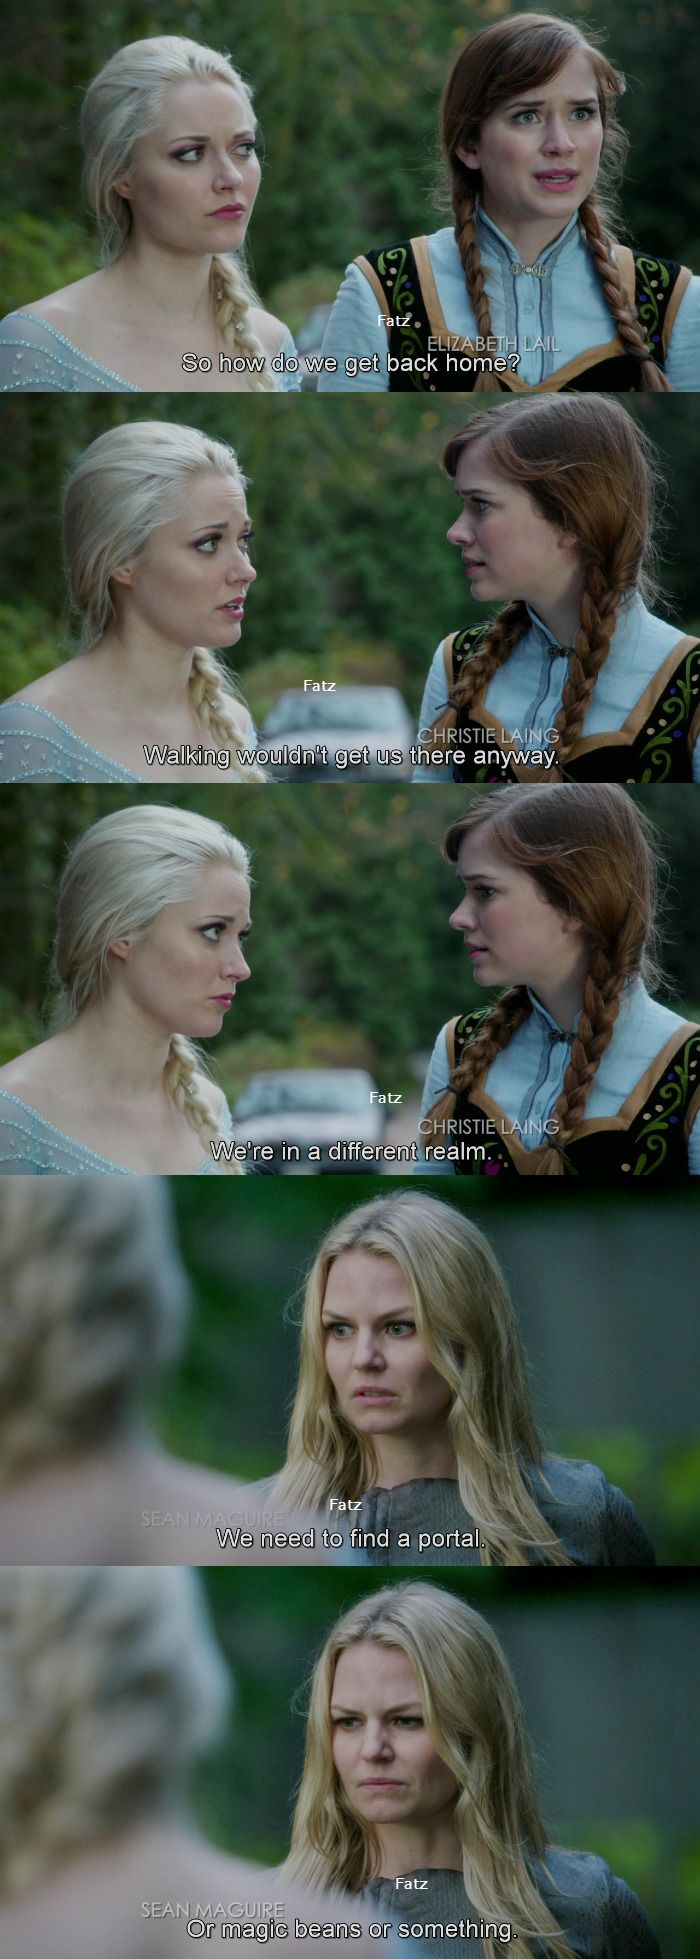 """""""How do we get back home?"""" Anna, """"Walking wouldn't get us there anyway."""" Elsa and Emma - 4 * 11 """"Heroes and Villains"""""""